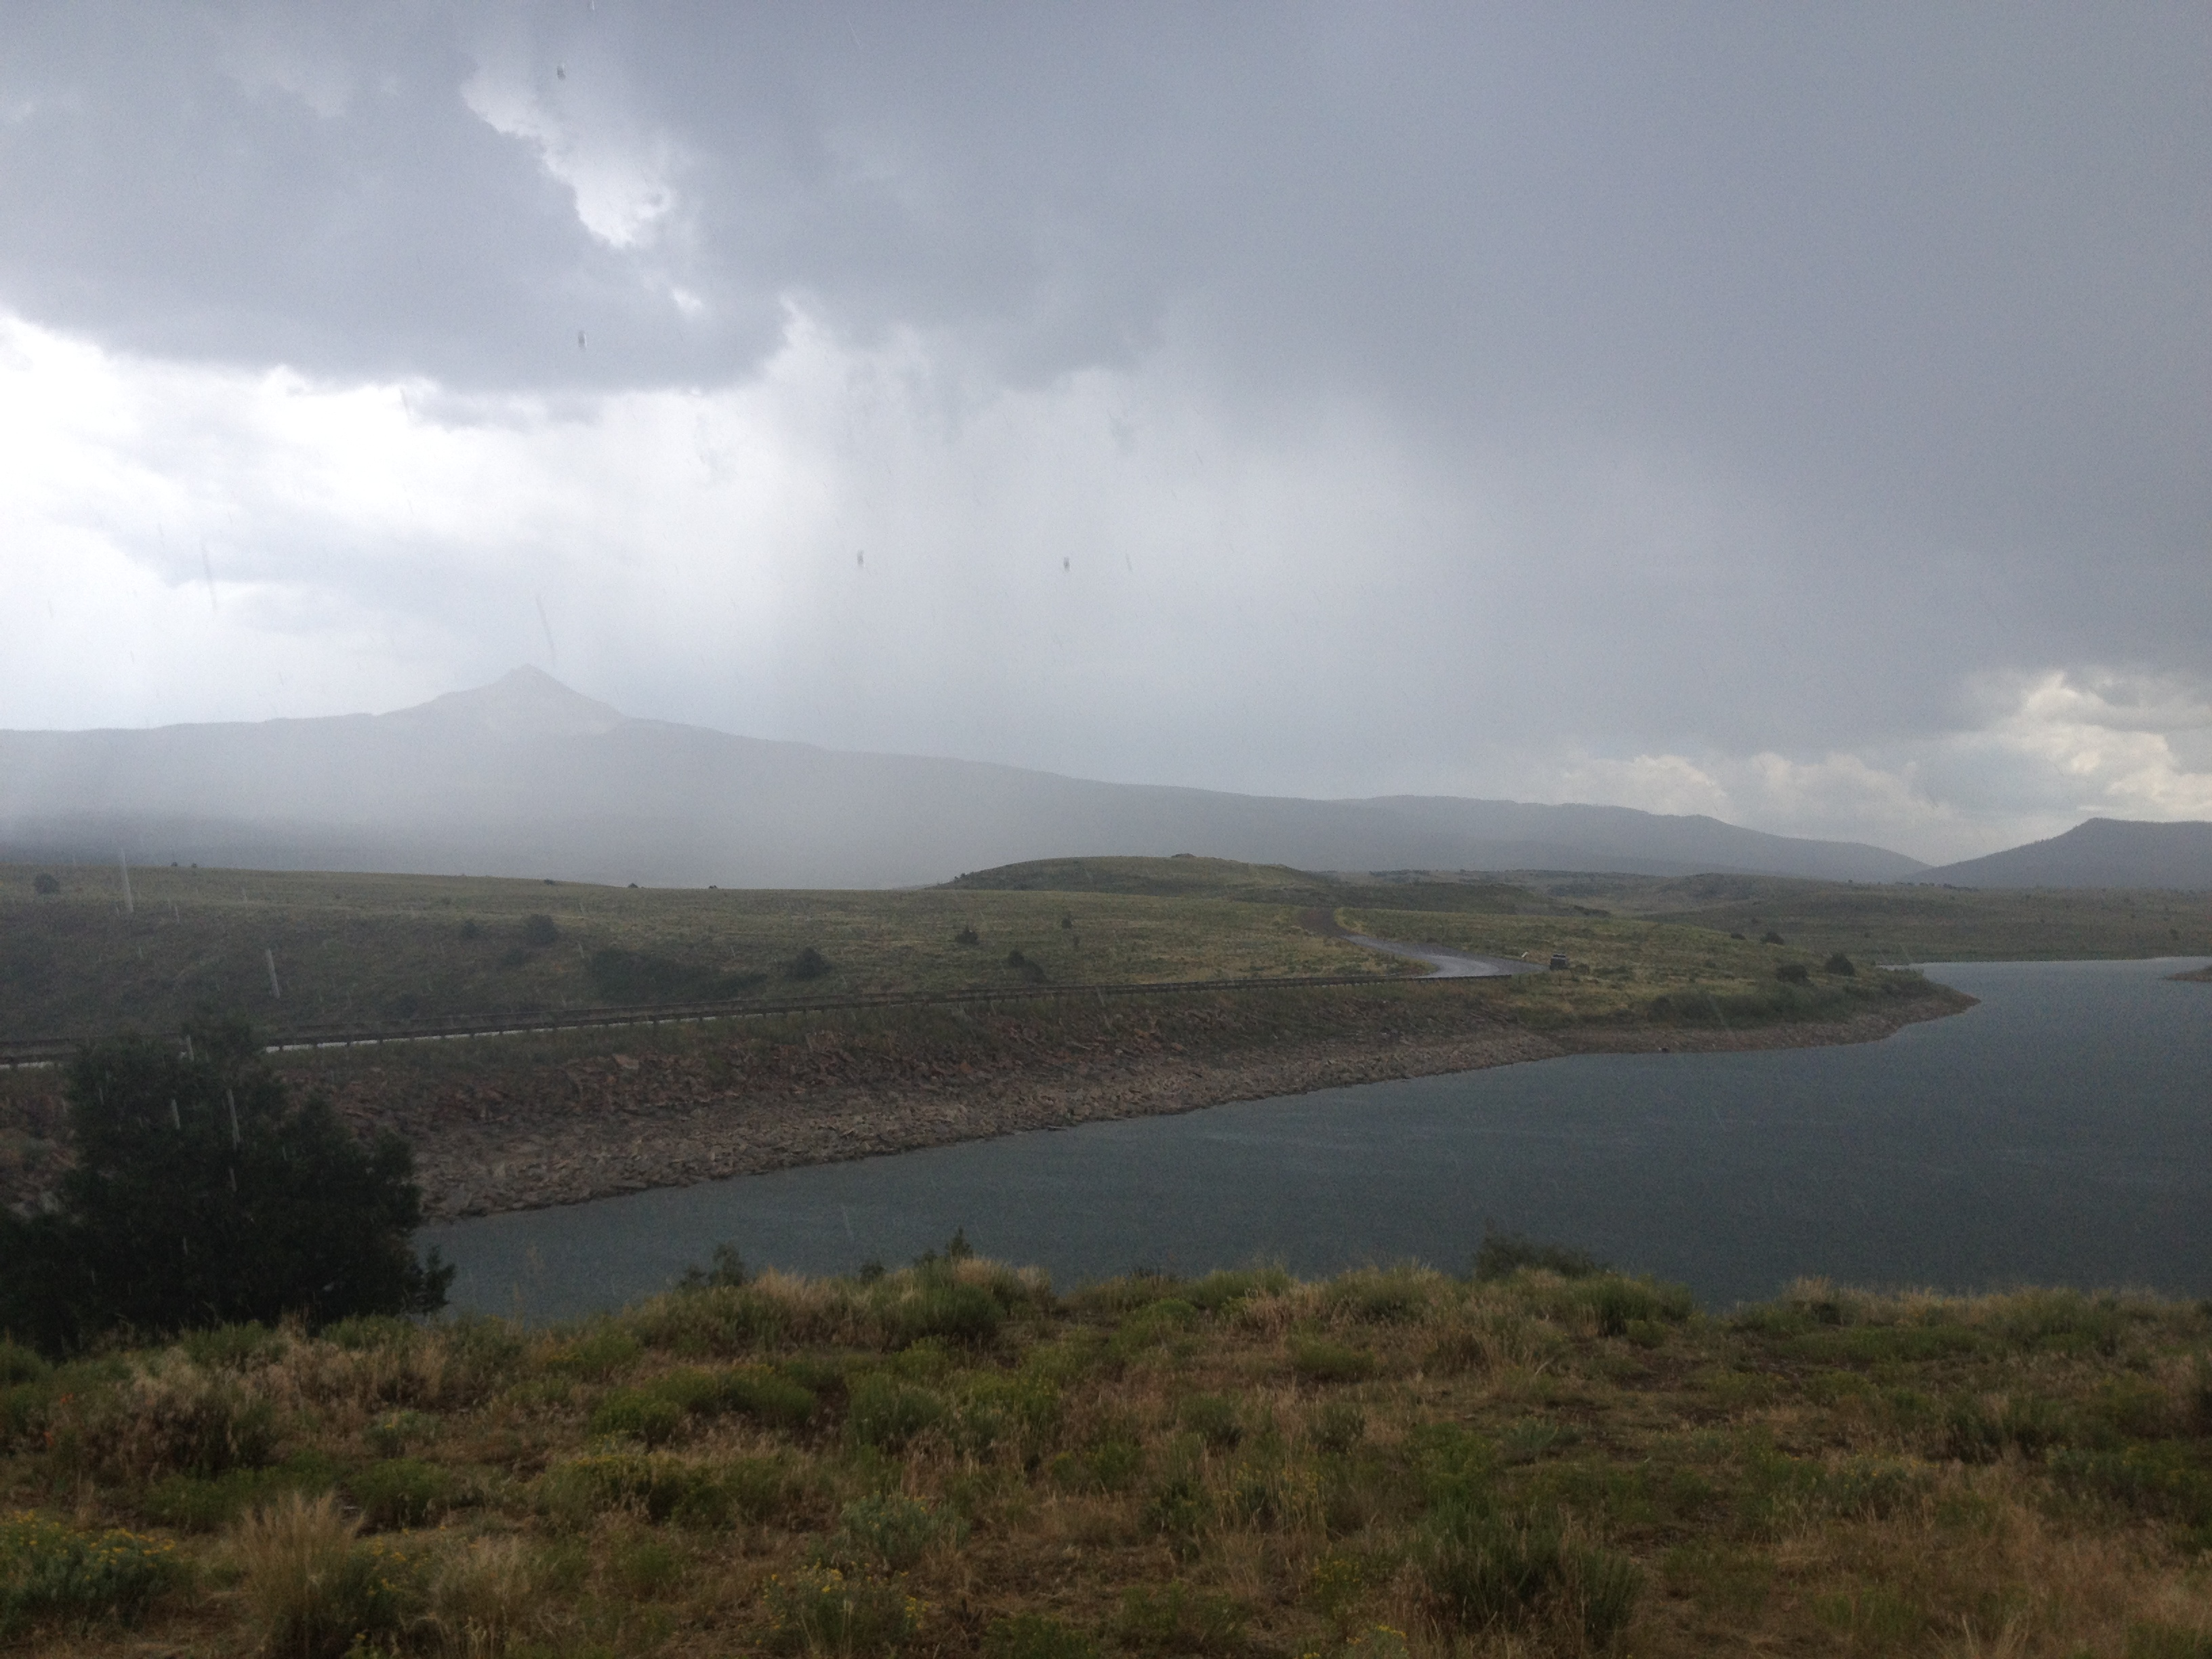 The second storm approaching from Lone Cone (good thing we got down!)